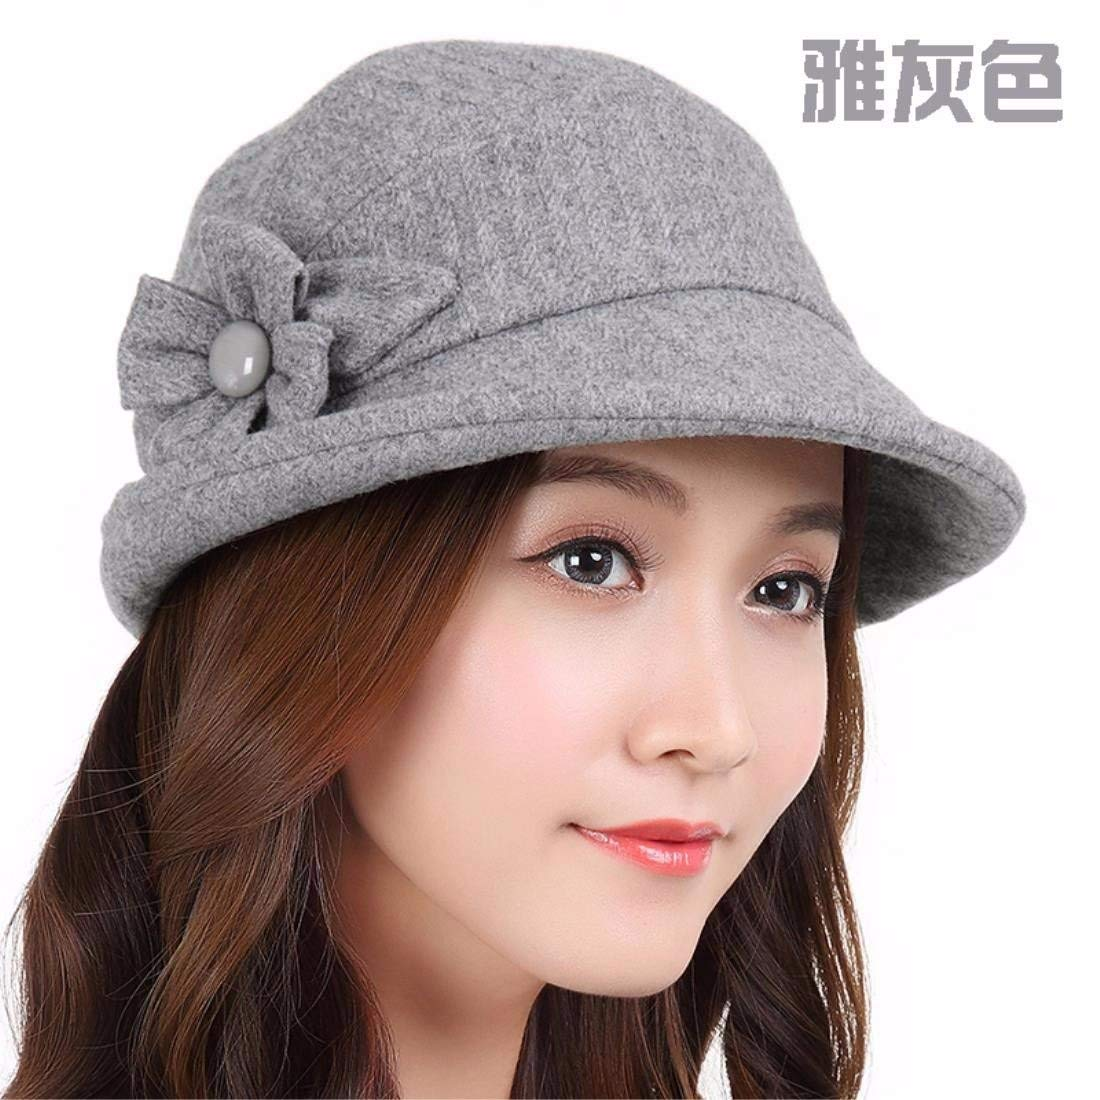 Thundertechs The Elegant English hat Winter HAT Winter HAT Female Autumn Small volumes of The New Cap (Color : Grey, Size : S (54-56CM))